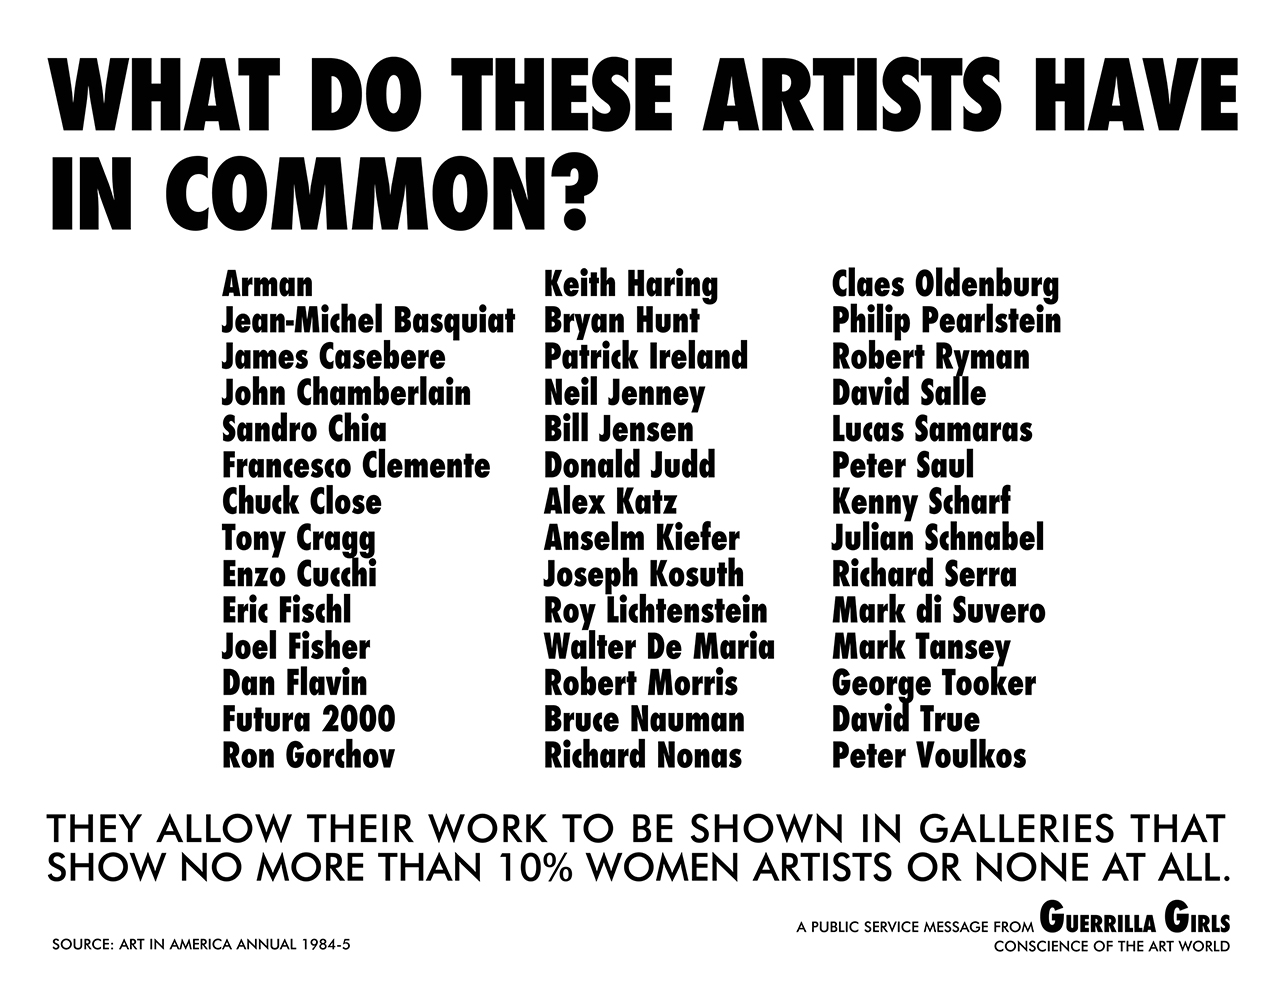 """Guerrilla Girls, """"What Do These Artists Have In Common?"""" (1985)"""